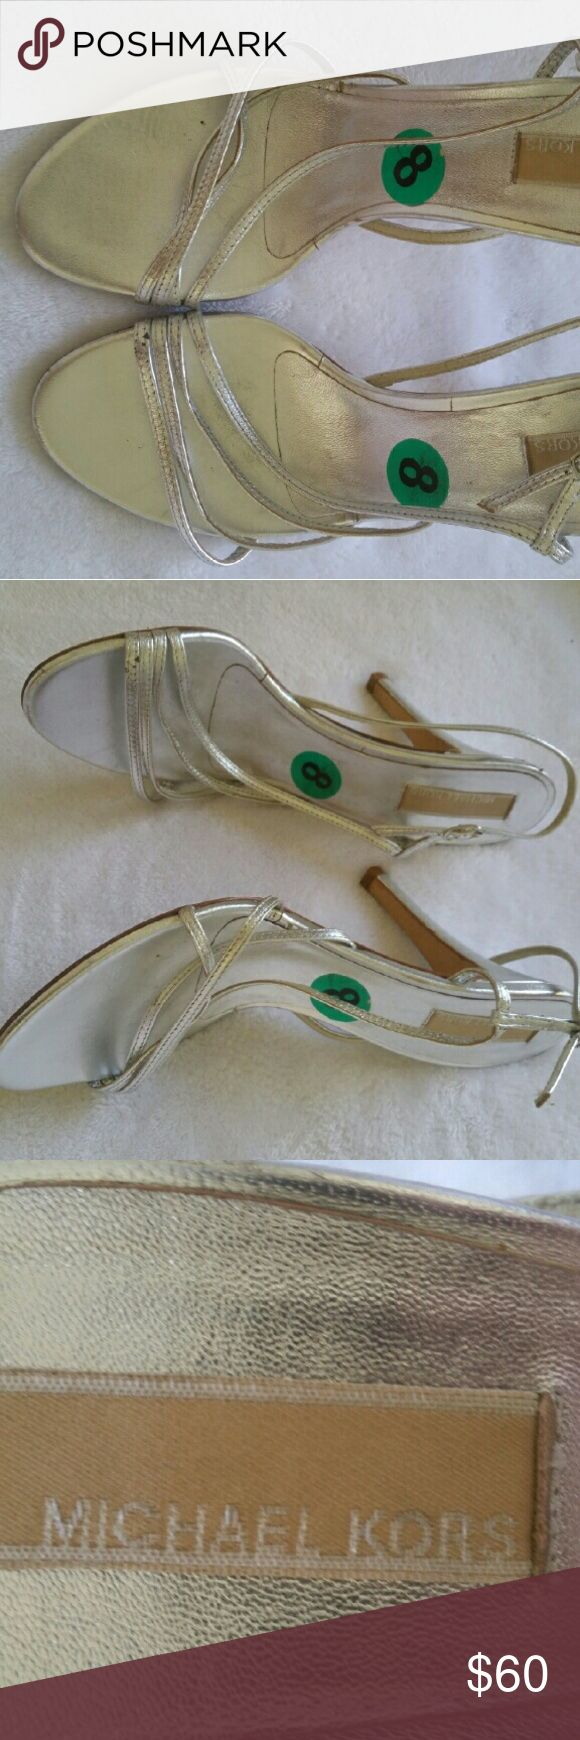 Silver heels Gorgeous silver strappy high heels Michael Kors Shoes Heels